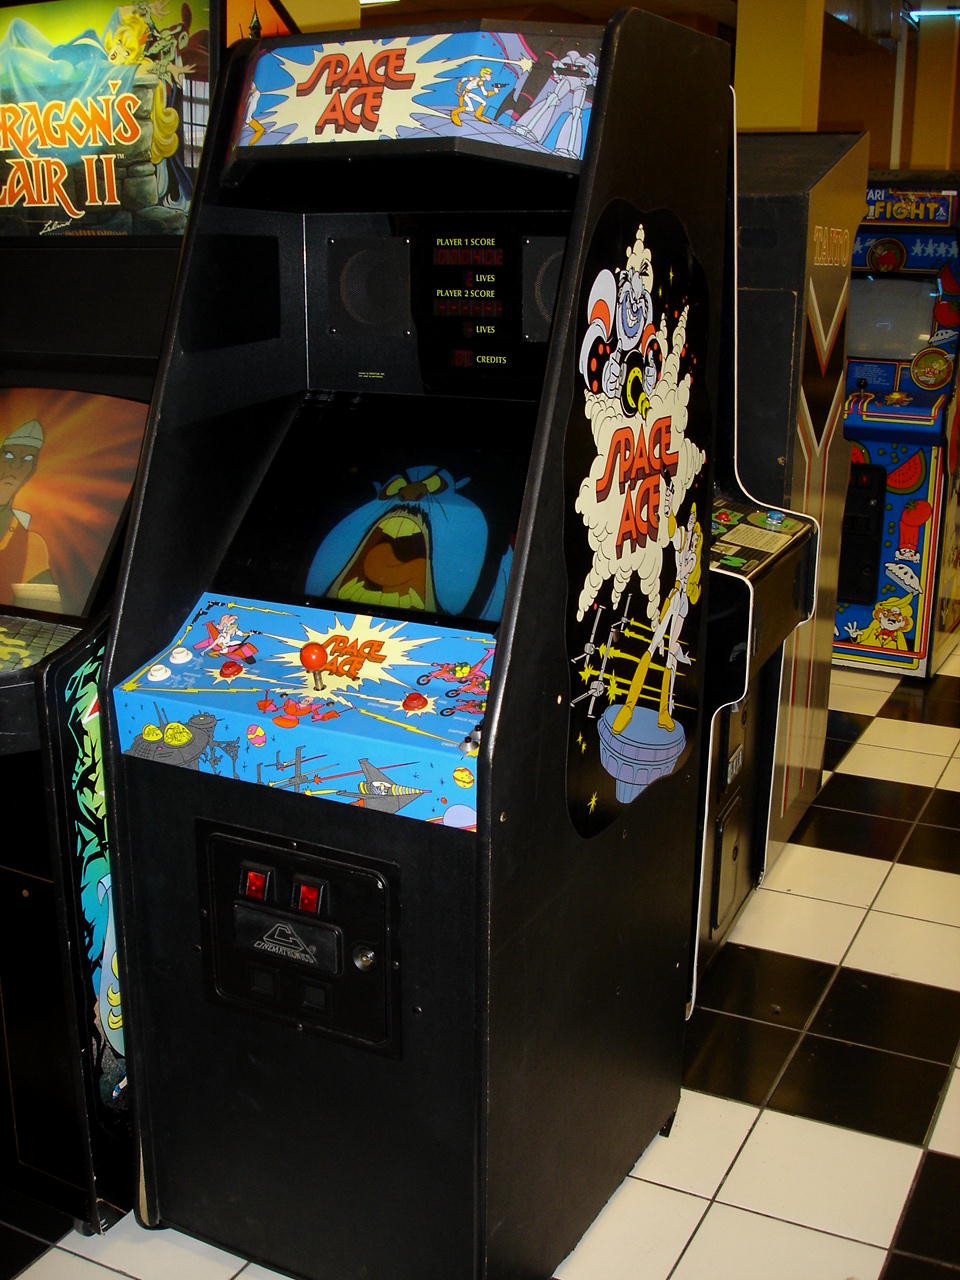 Best ideas about Ace Game Room . Save or Pin Space Ace 1 How Does it pare to the 1984 Game and Now.